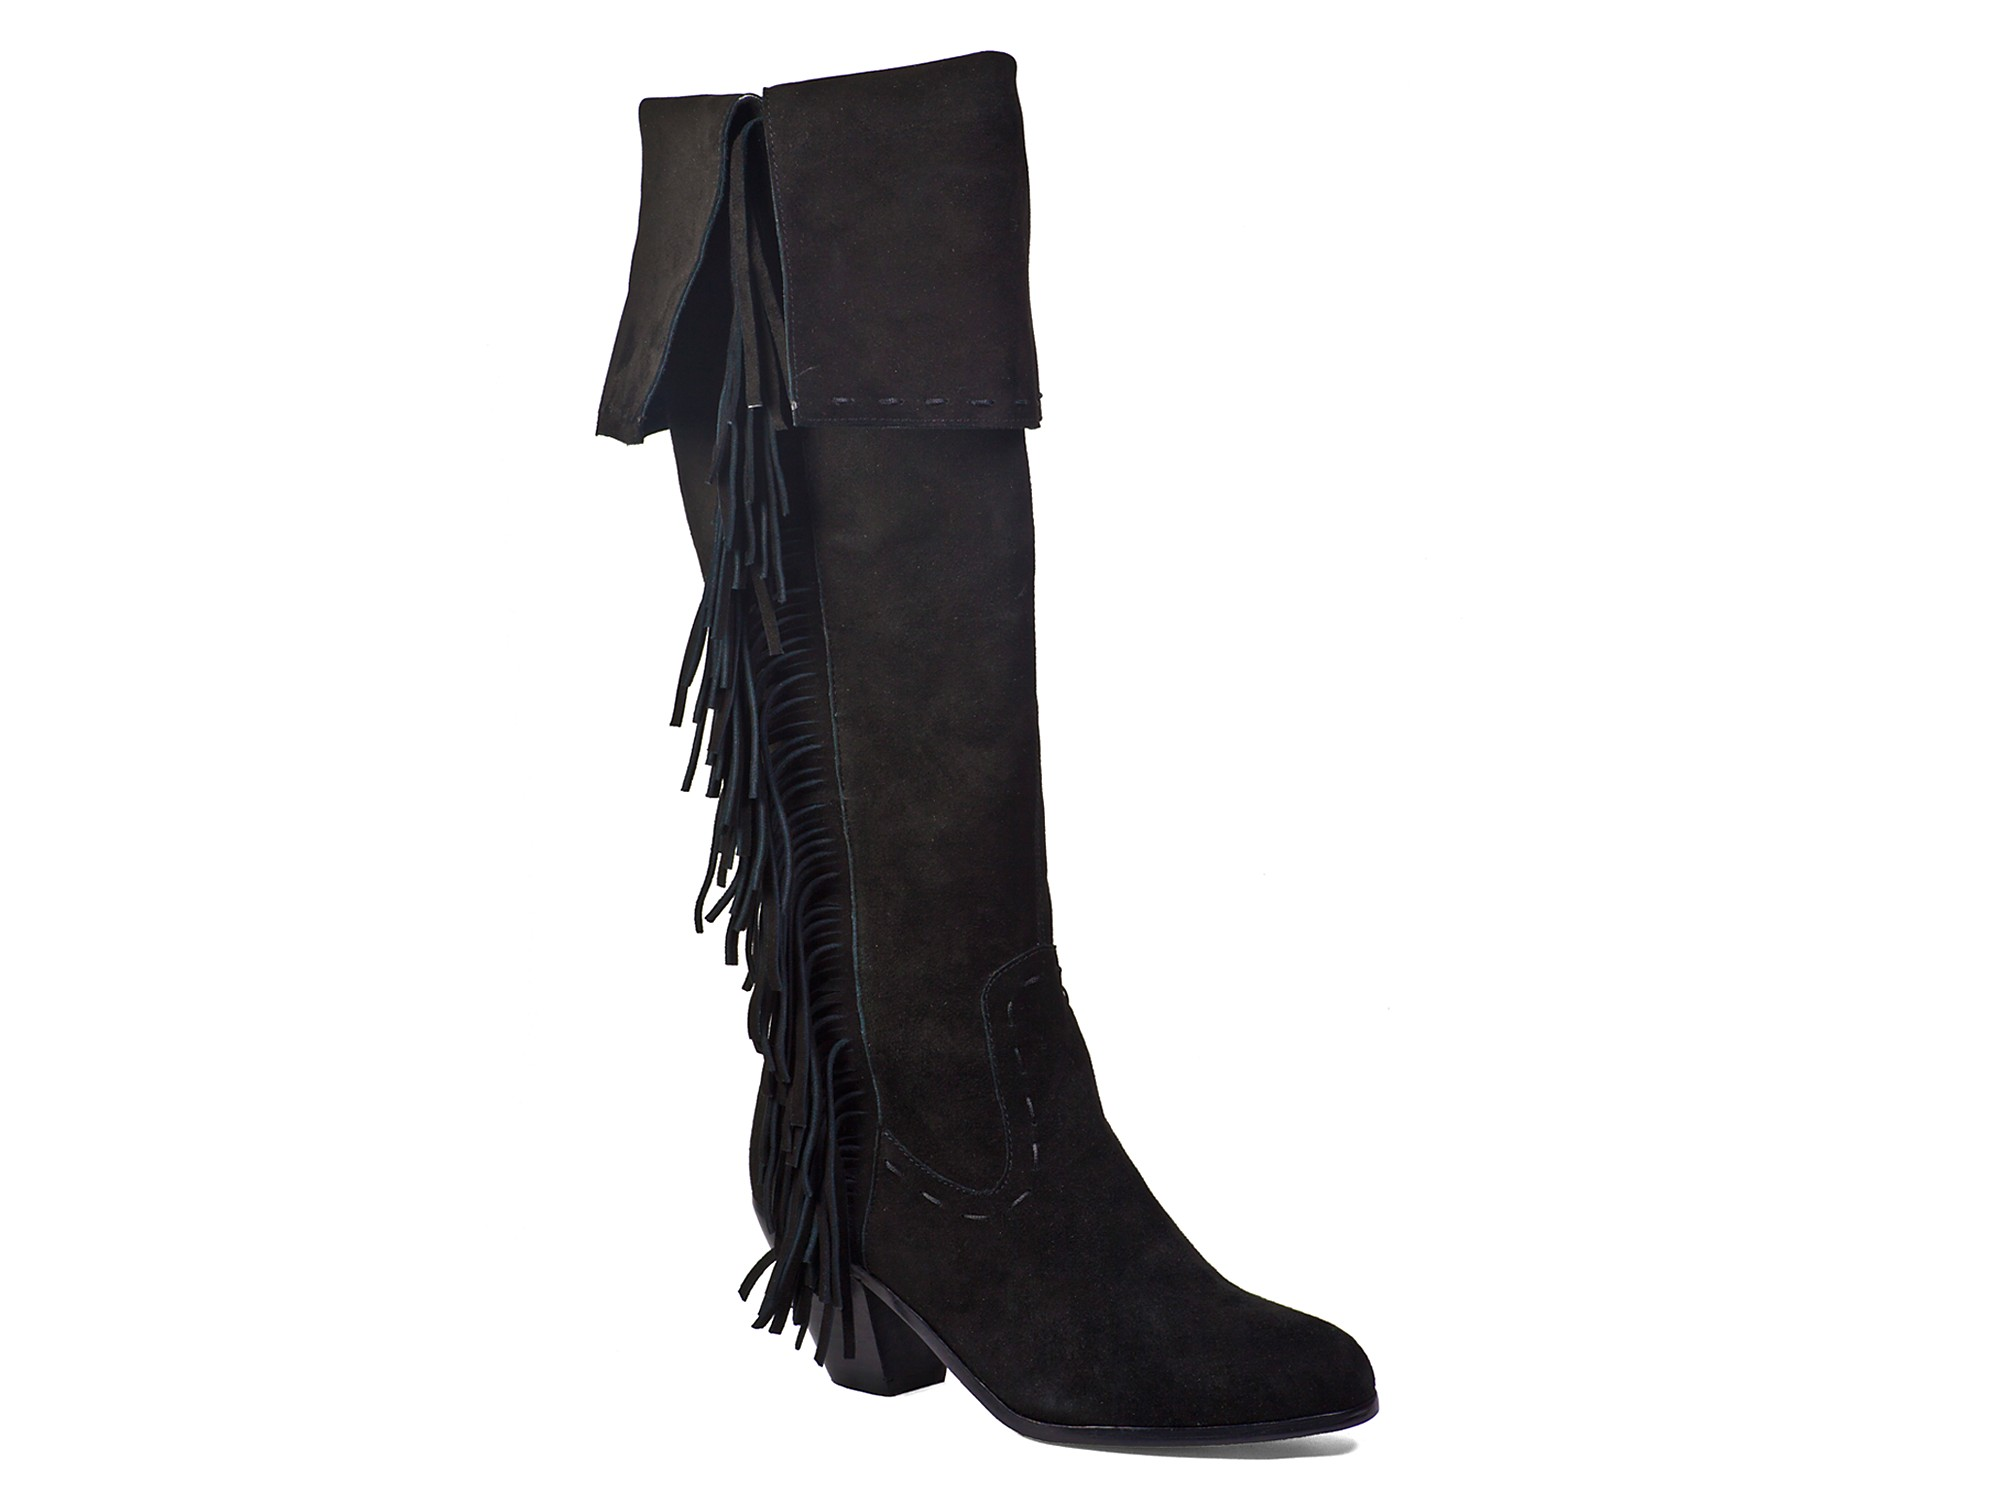 d43601b9f9a Sam Edelman Luella Fringe Over The Knee Boots in Black - Lyst